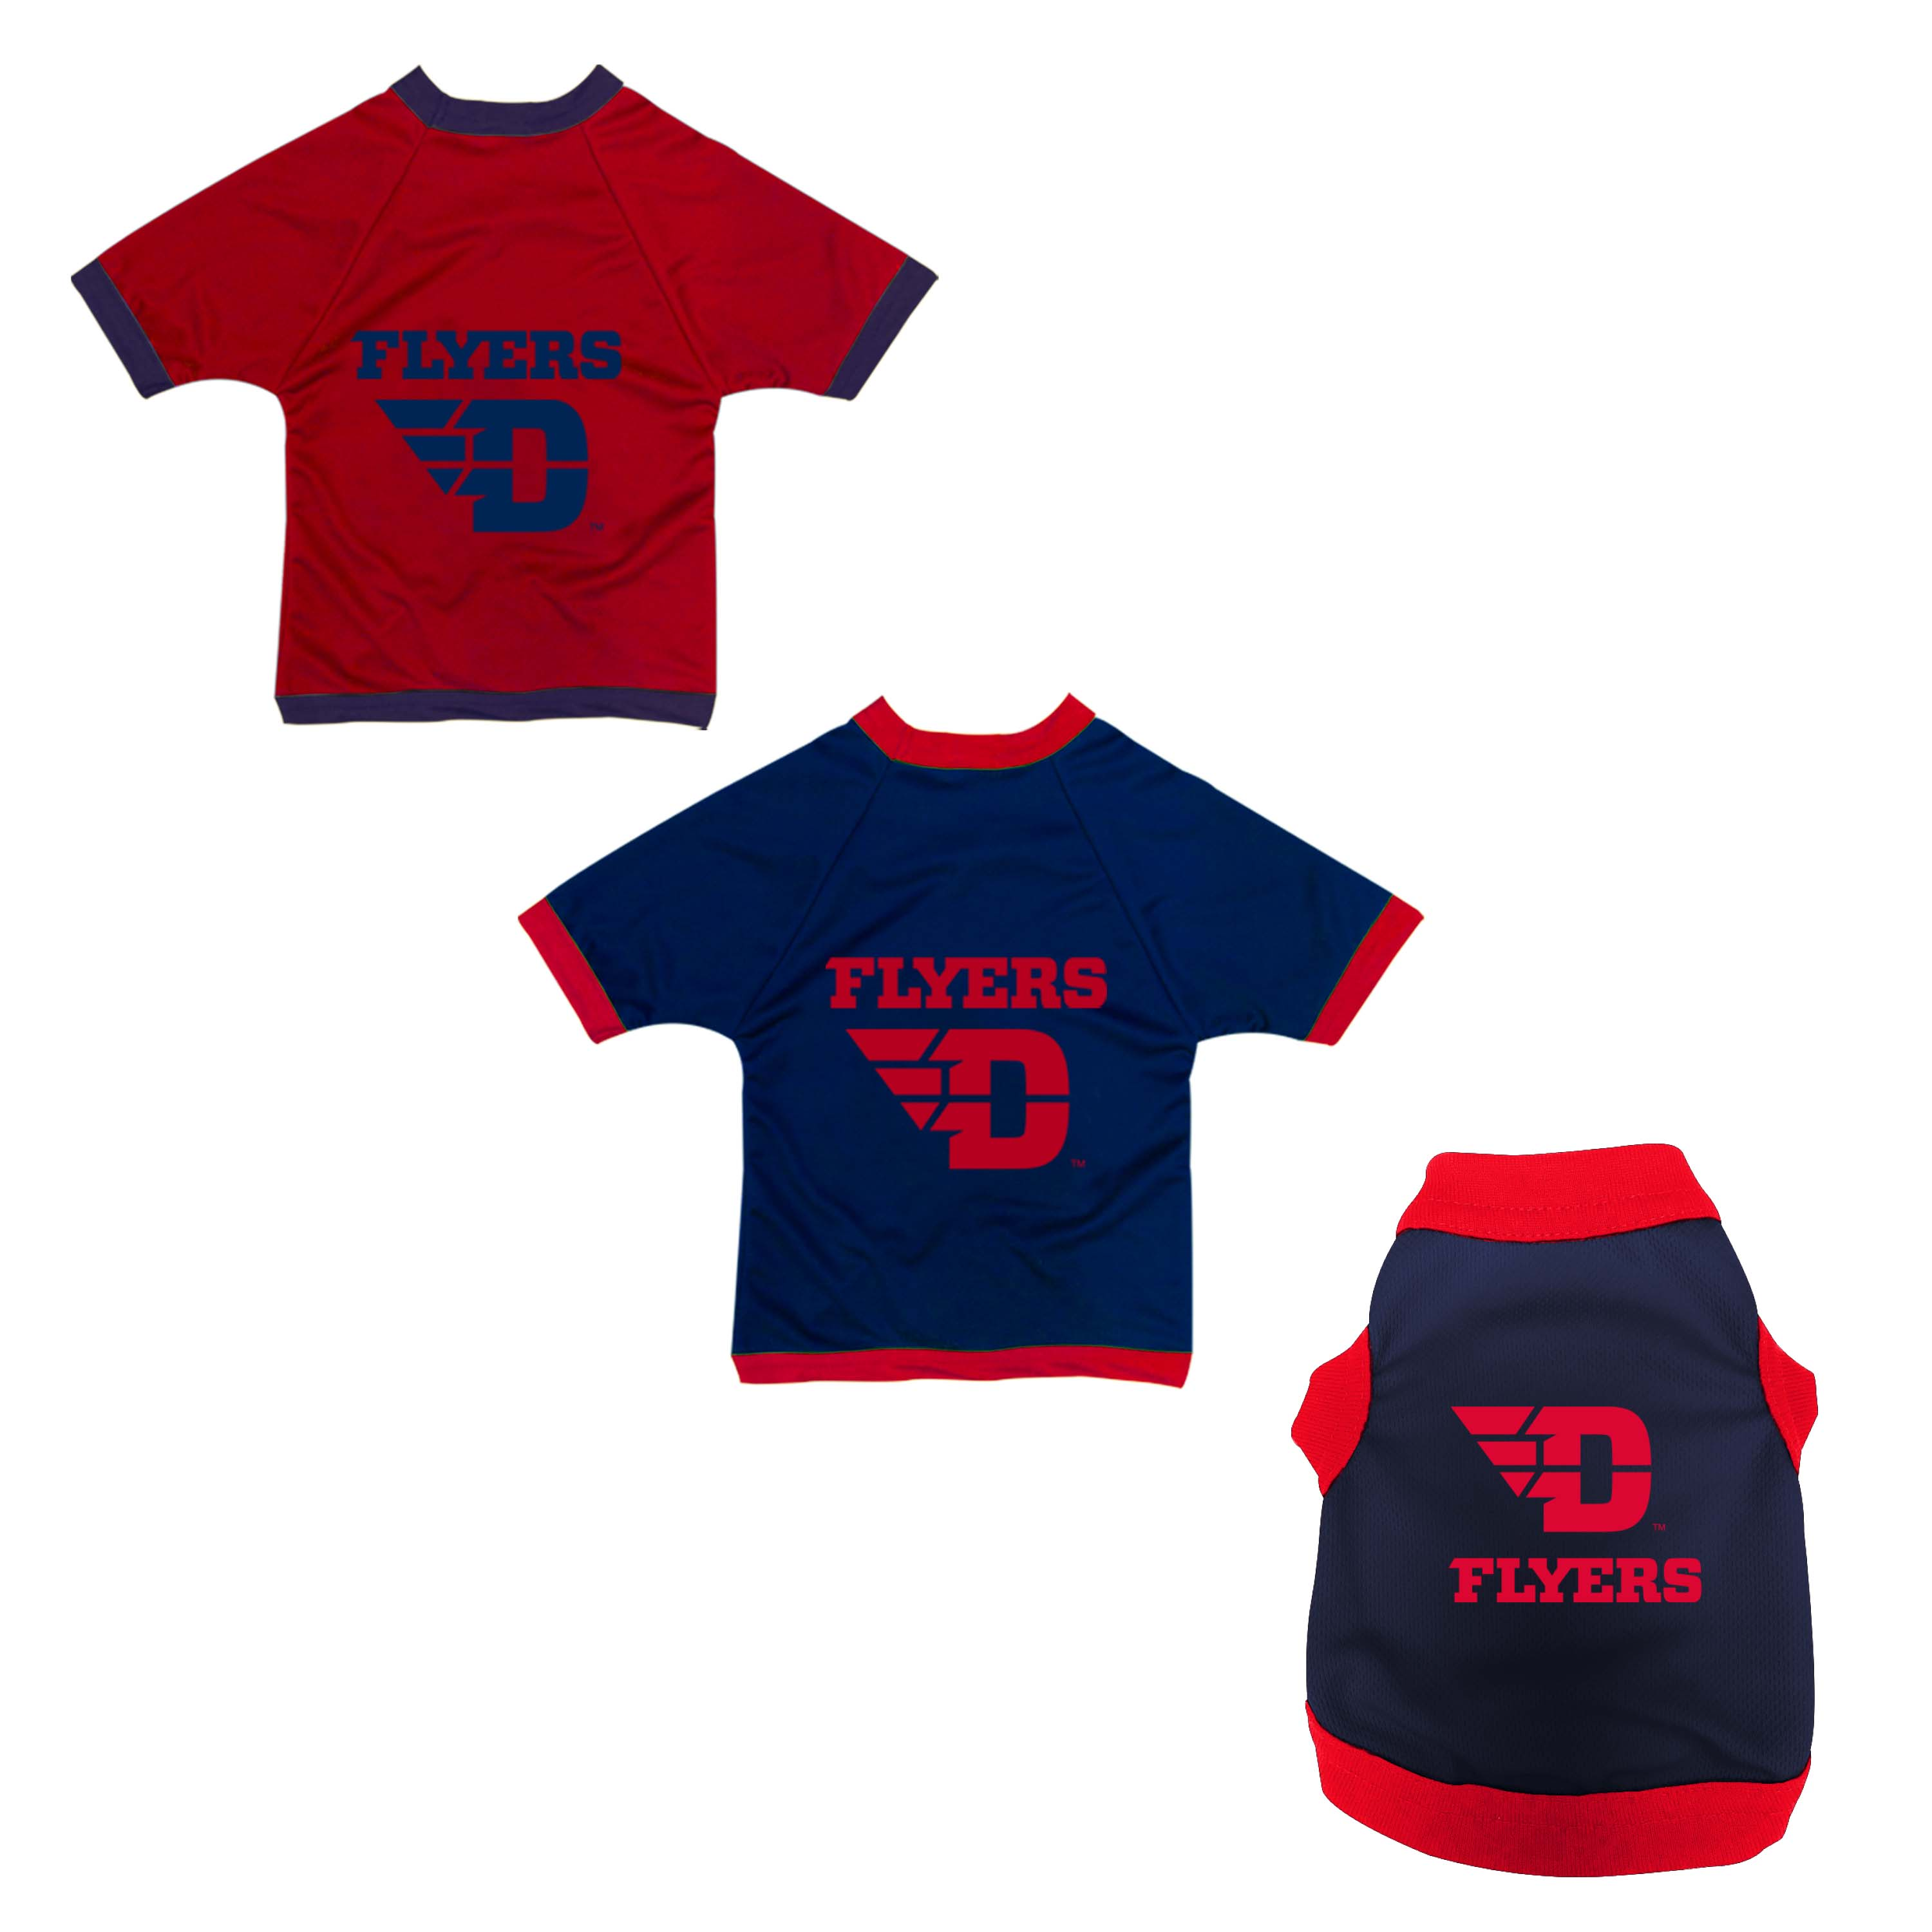 meet f6a27 dfa87 All Star Dogs: University of Dayton Flyers Pet apparel and ...